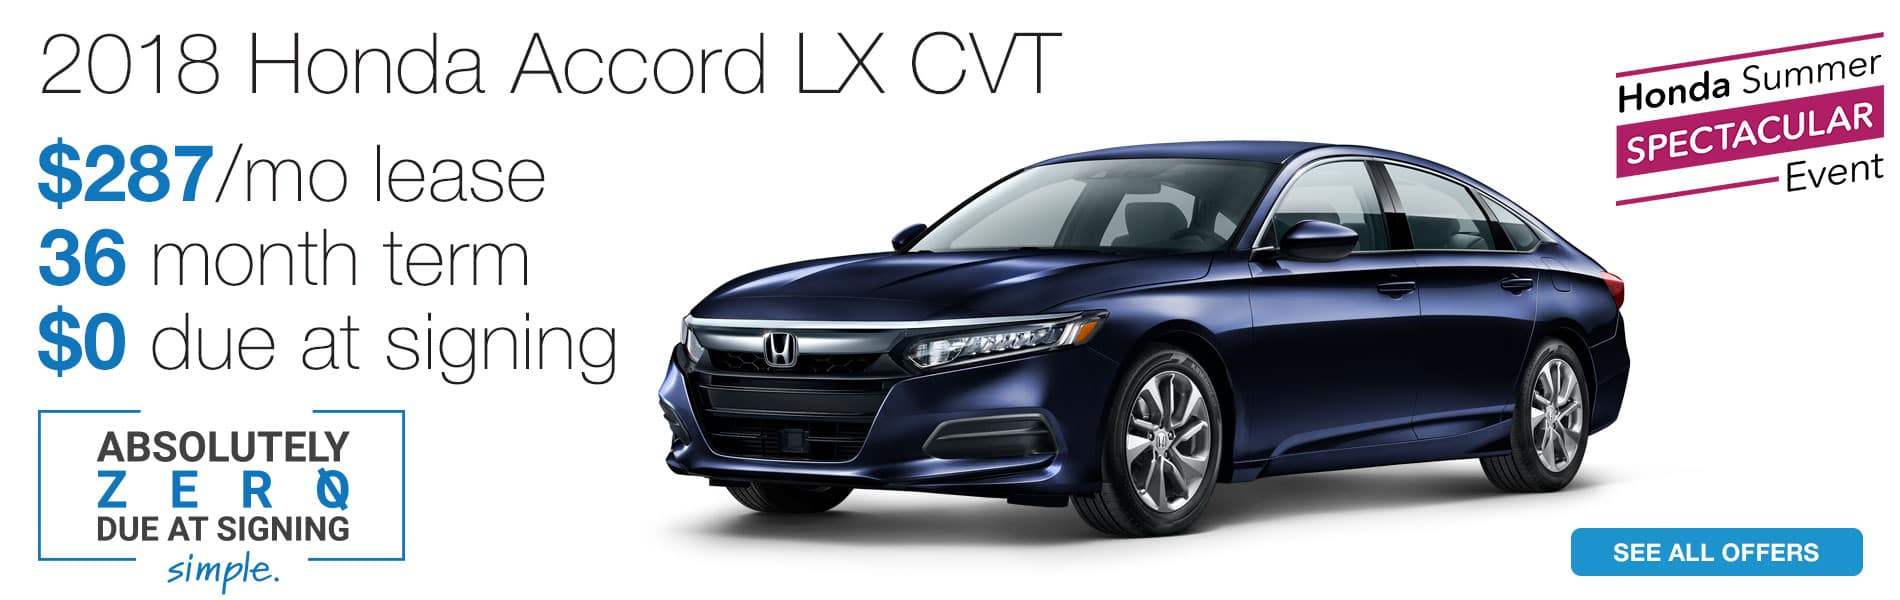 Lease a 2018 Honda Accord LX CVT for $287 per month with absolutely $0 due at signing